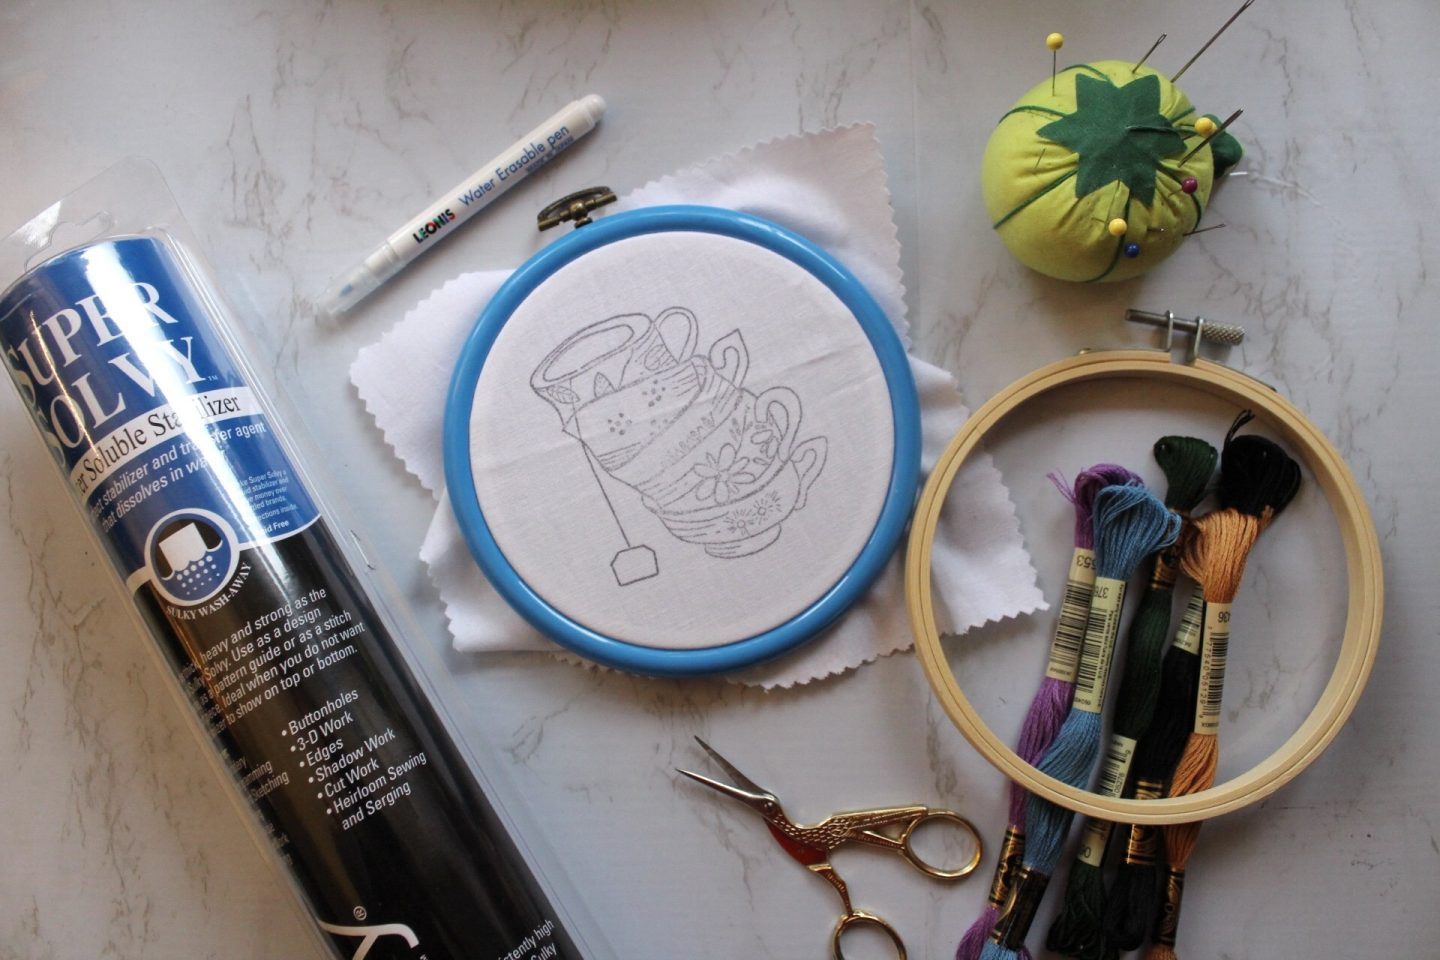 embroidery supplies and materials